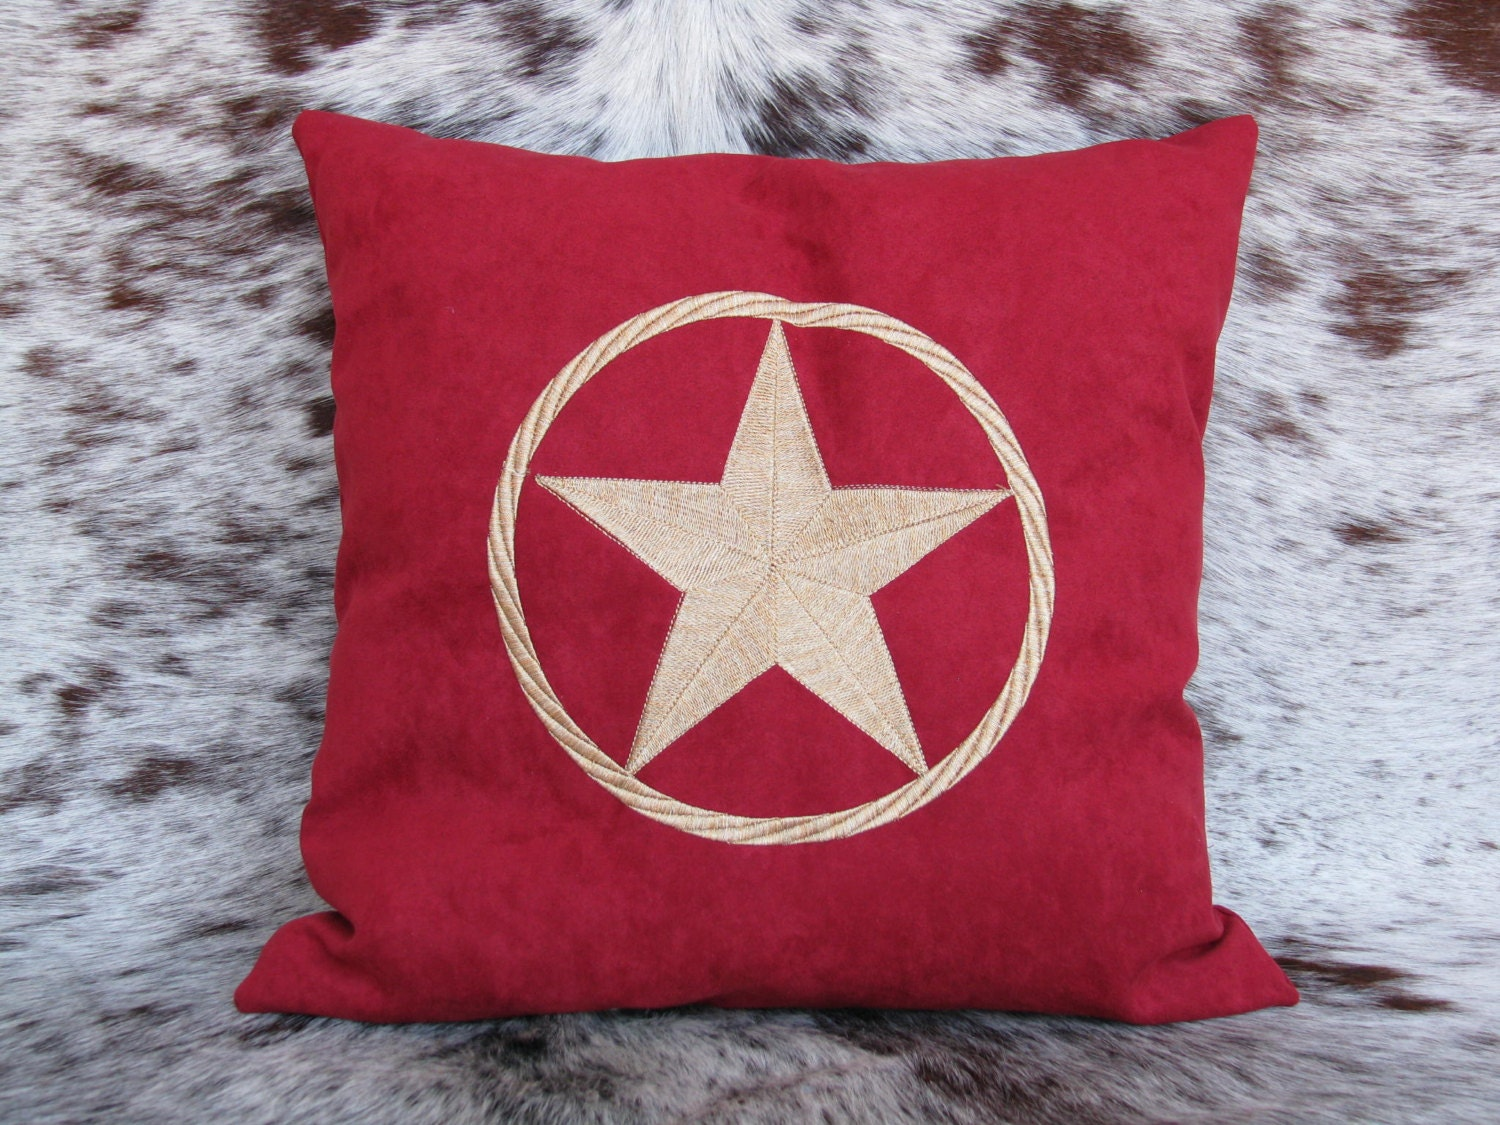 Personalized Embroidered Throw Pillows : Western Decor Star Pillow Custom Embroidered Pillow